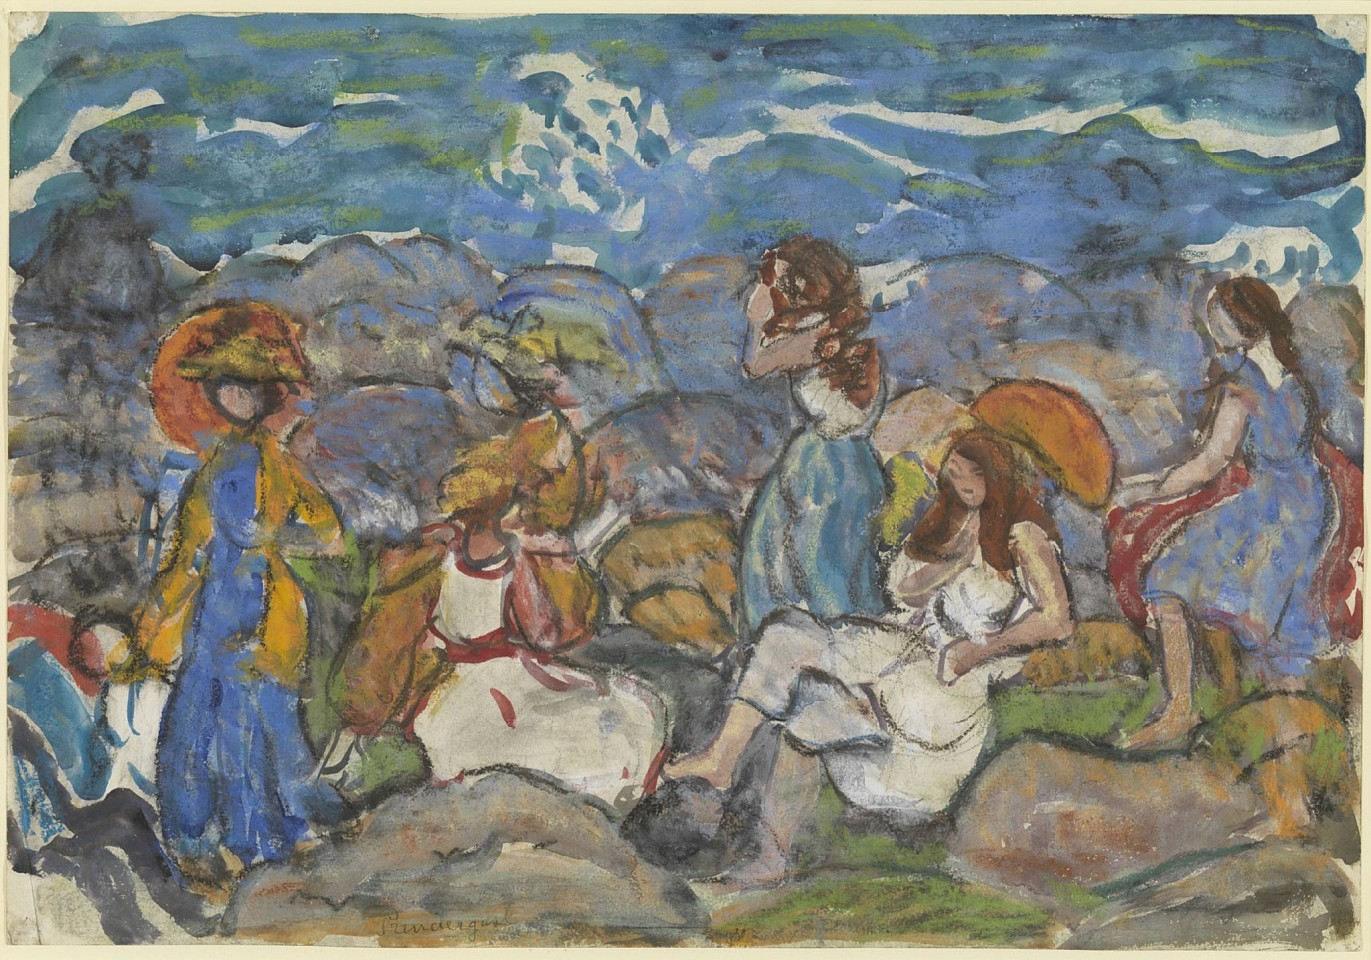 Maurice Prendergast ,   On The Rocks, North Shore, Massachusetts  ,  c. 1916-19     watercolor, pastel and pencil on paper ,  13 3/4 x 19 3/4 in. (34.9 x 50.2 cm)